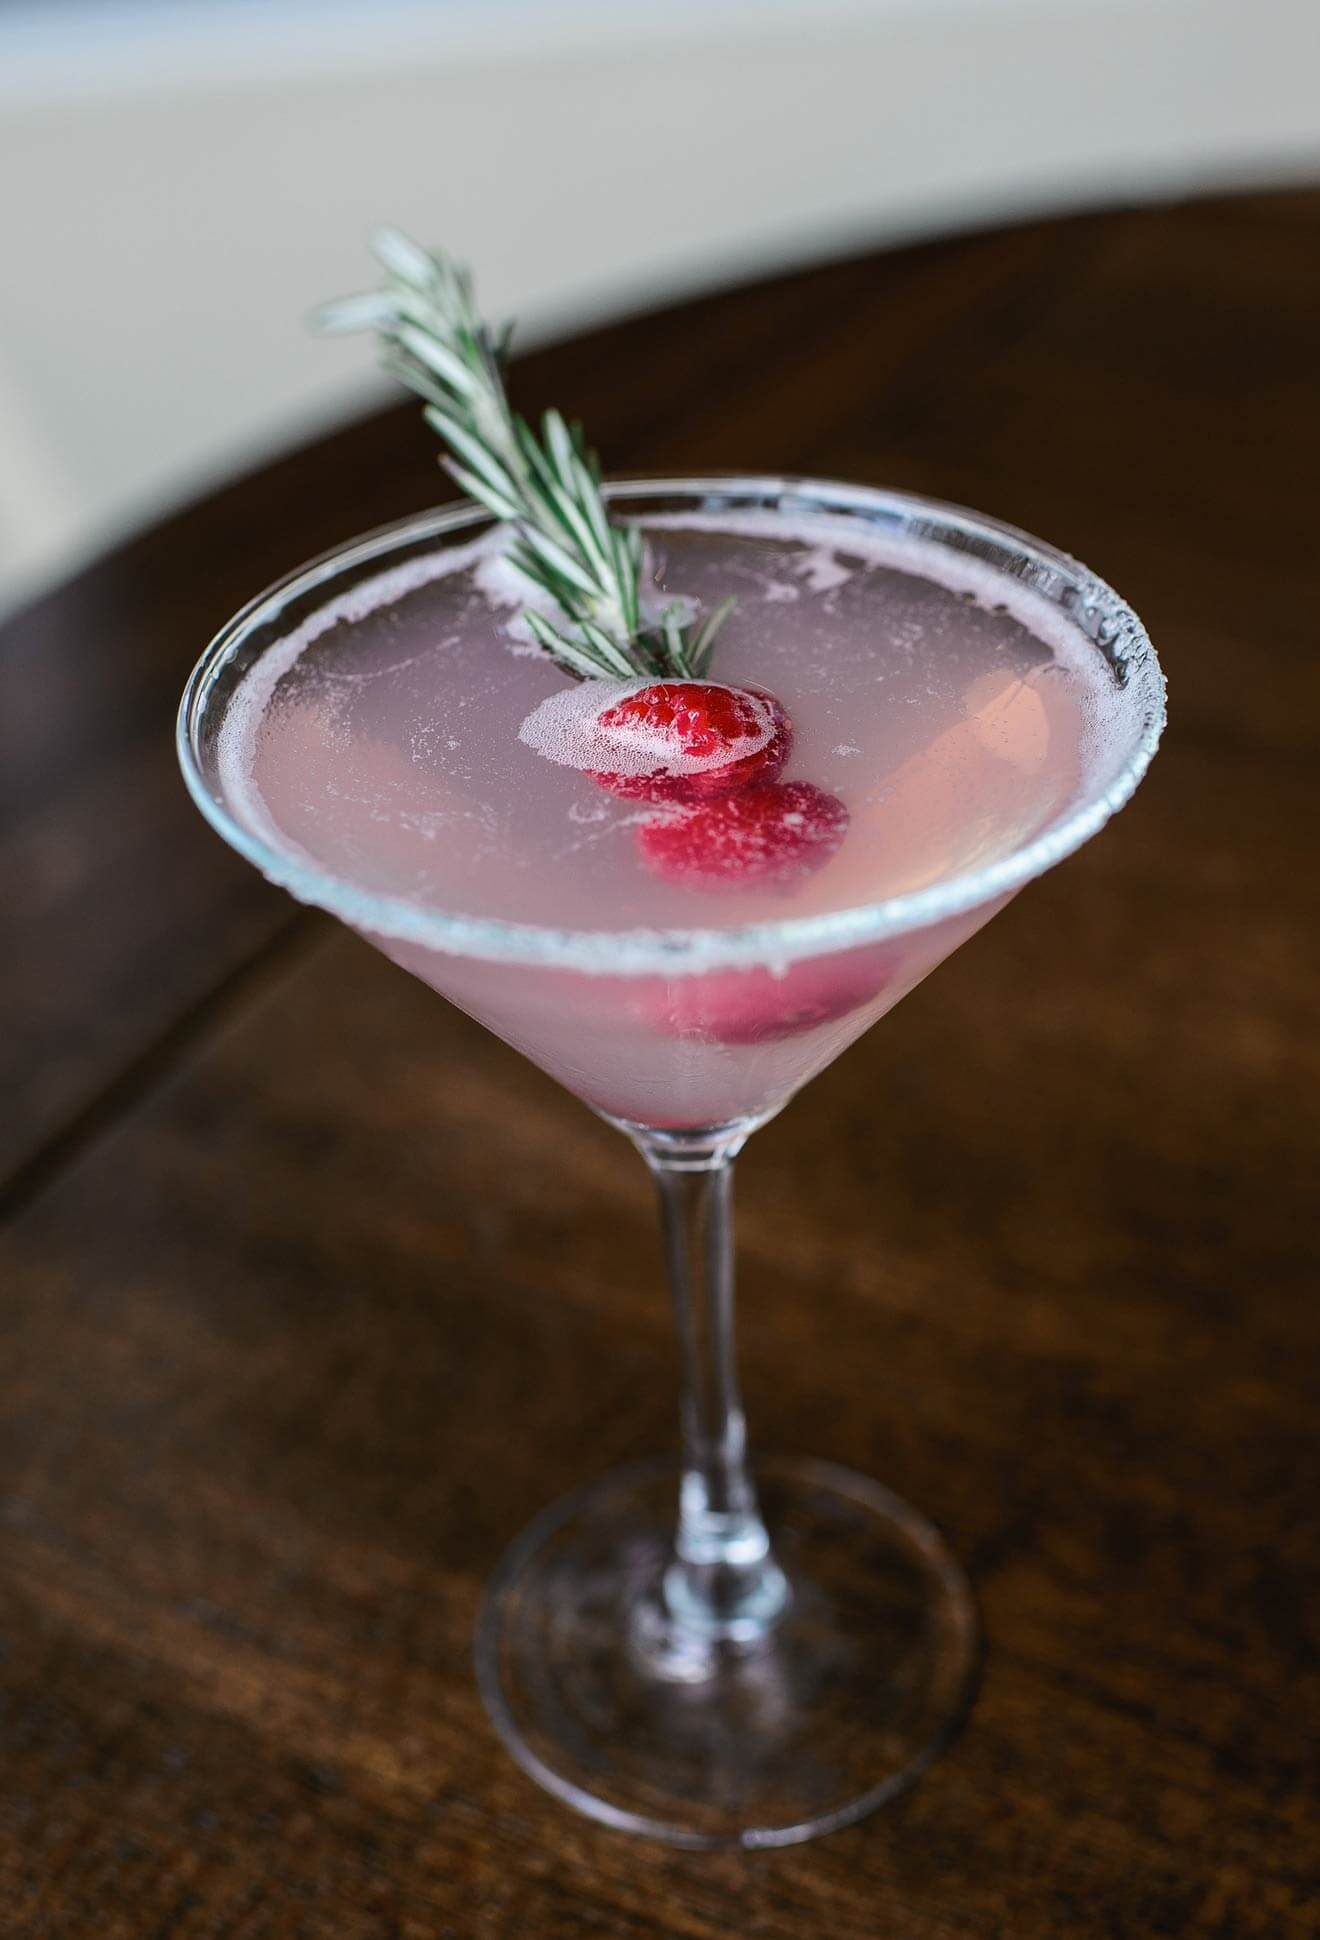 Drink of the Week: Mistletoe Martini